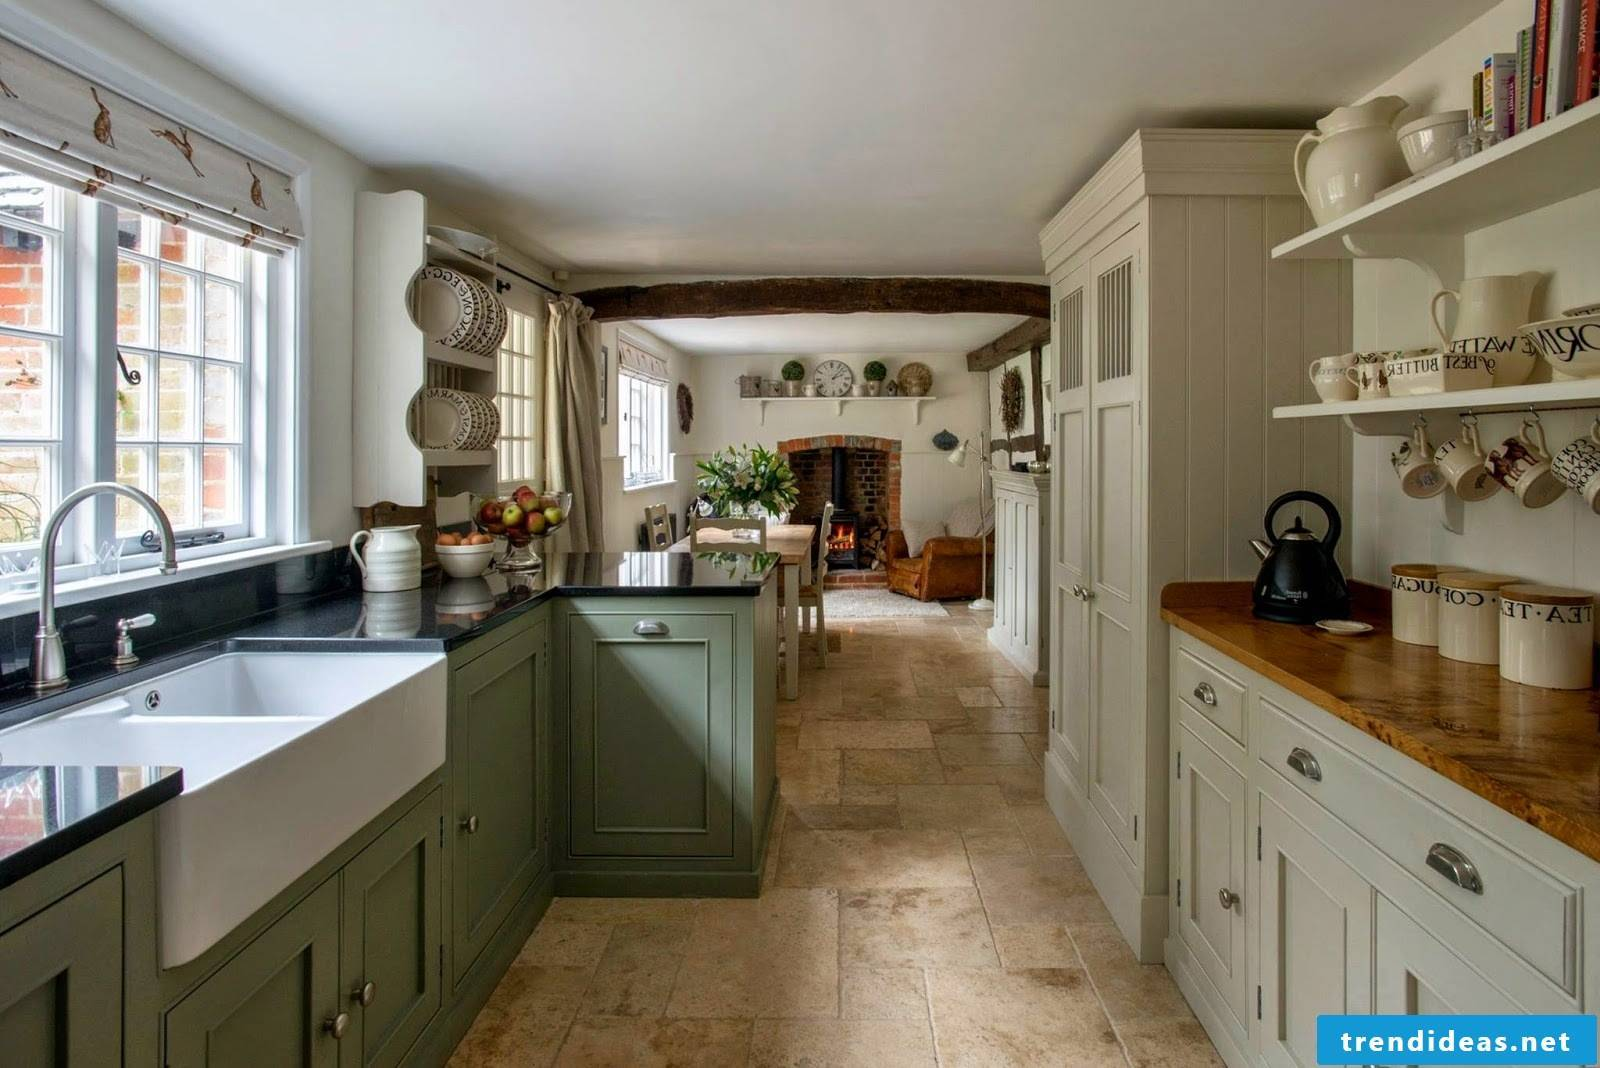 Romantic country kitchen in pastel colors